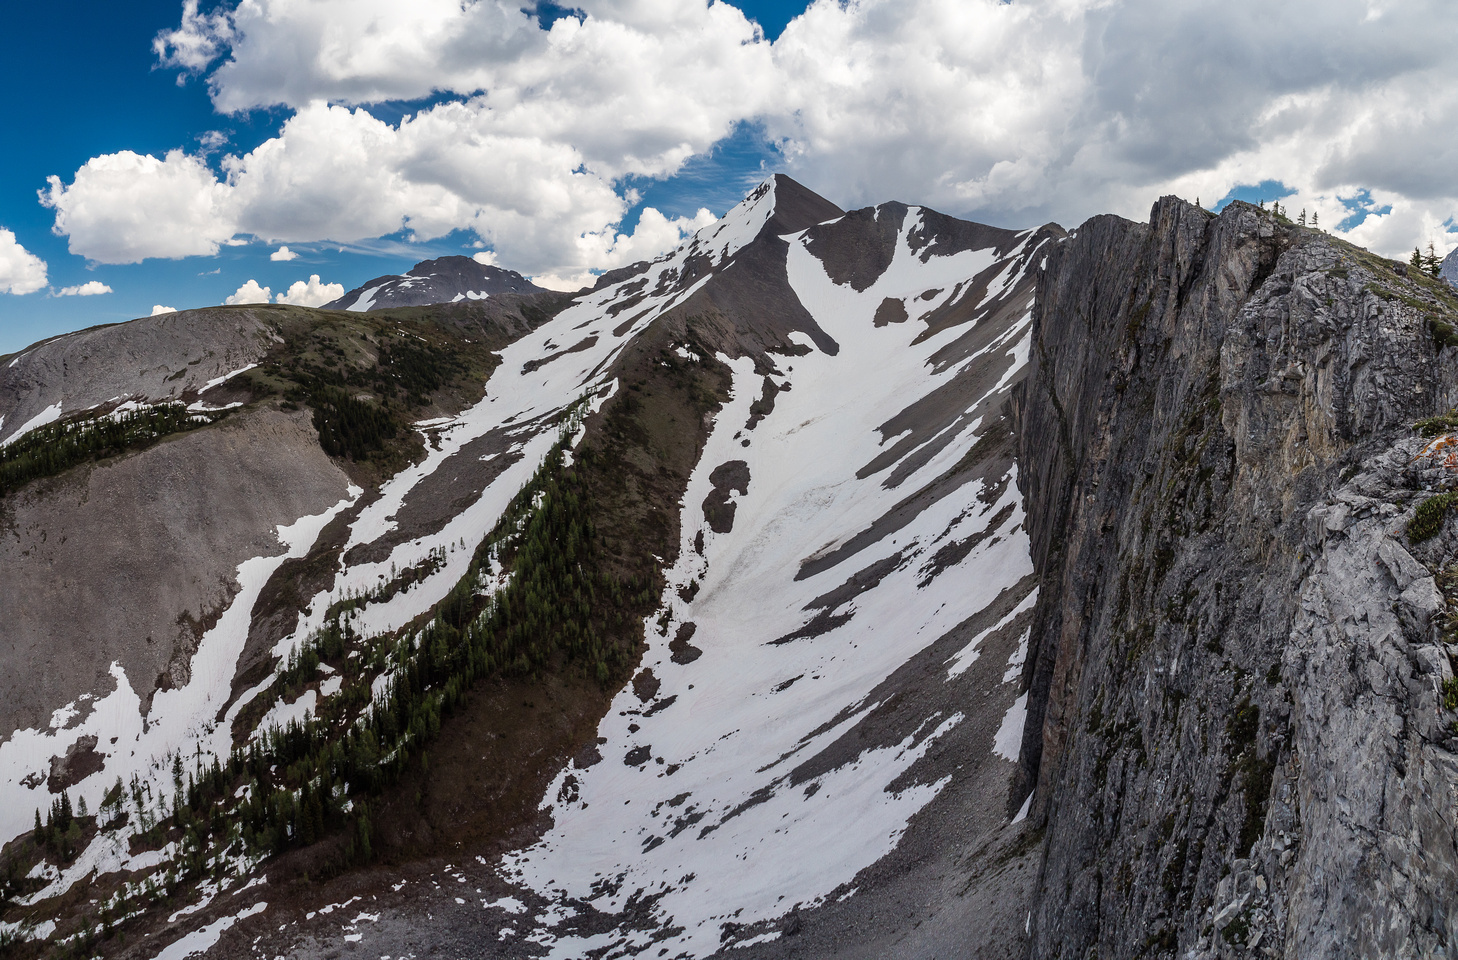 Looking back along Owl Ridge (R) towards Owl Peak. Mount Turner to the left in the distance.